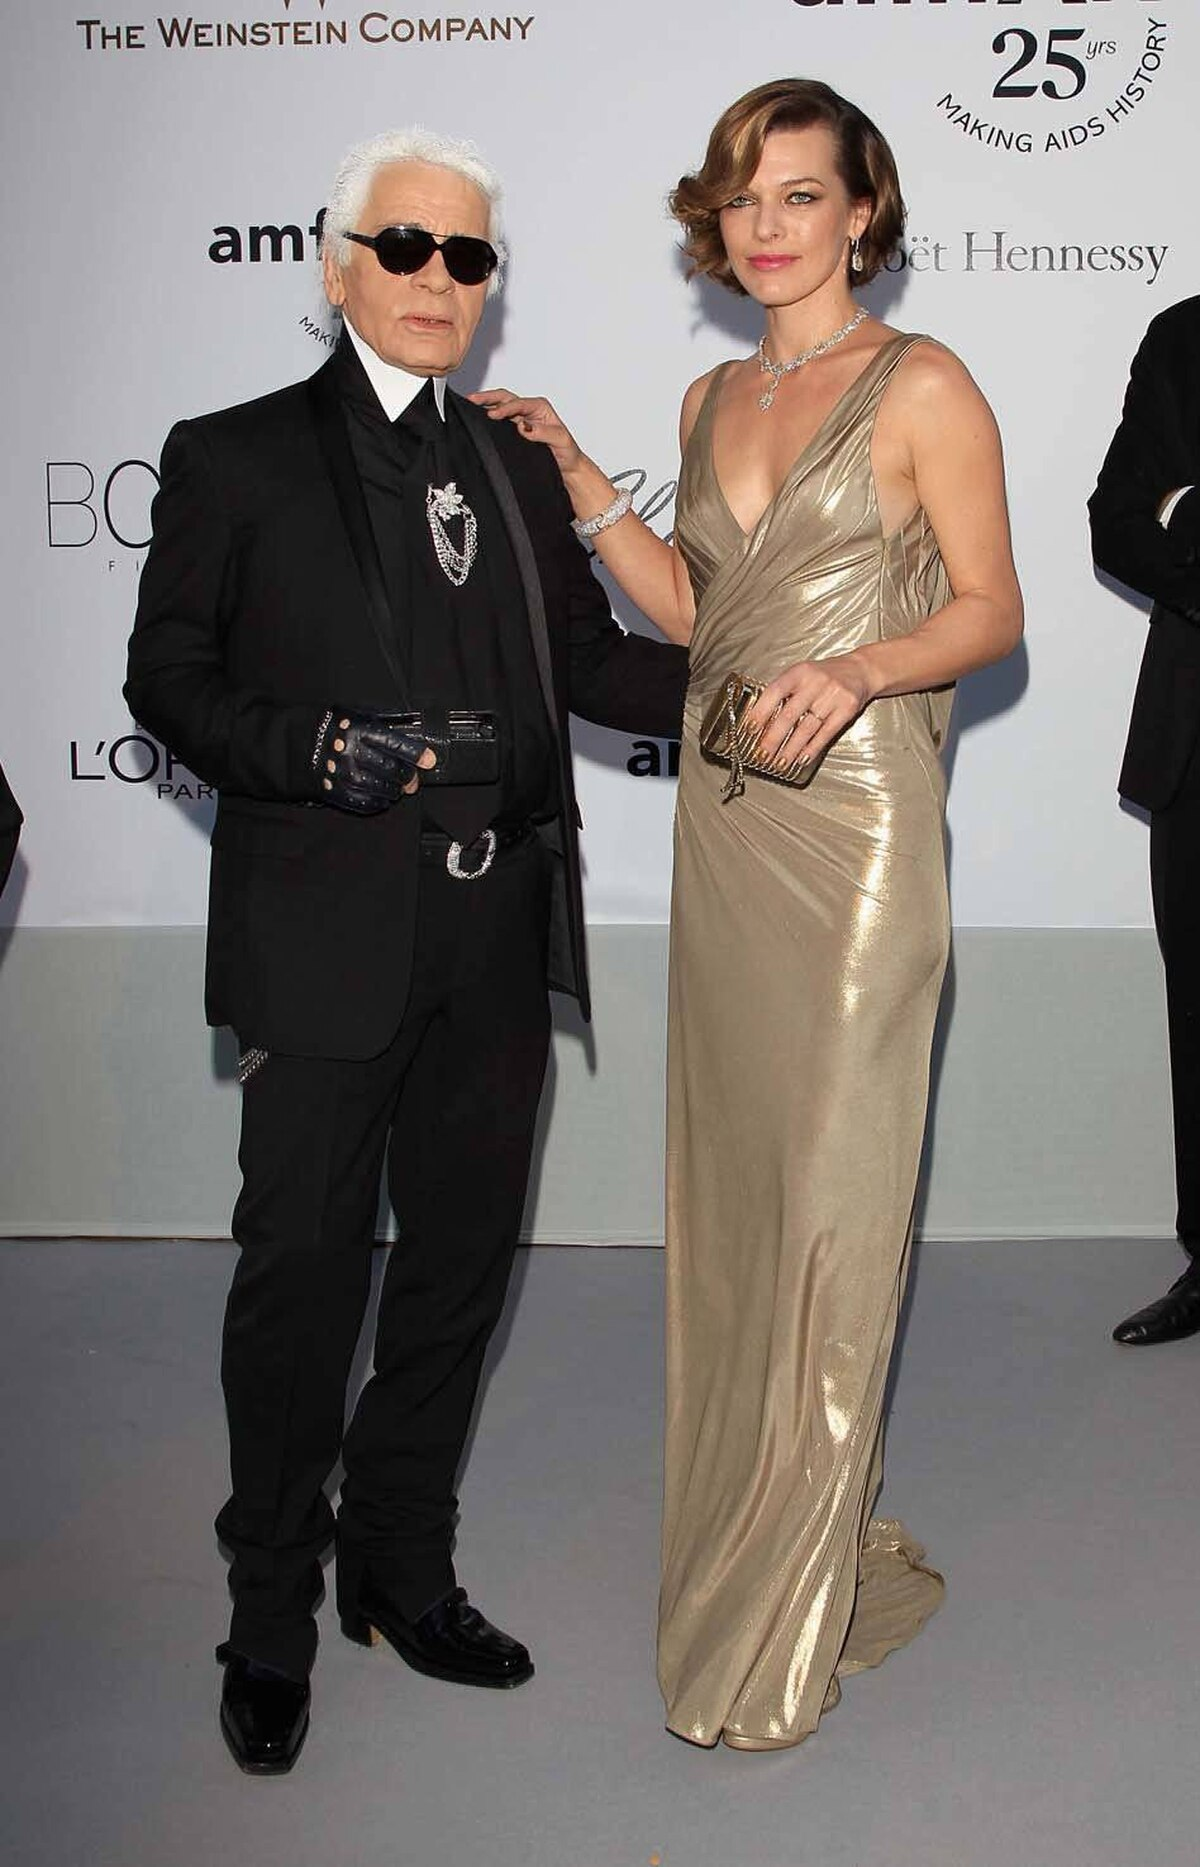 Karl Lagerfeld and Milla Jovovich attend amfAR's Cinema Against AIDS Gala at the Cannes Film Festival on Thursday.